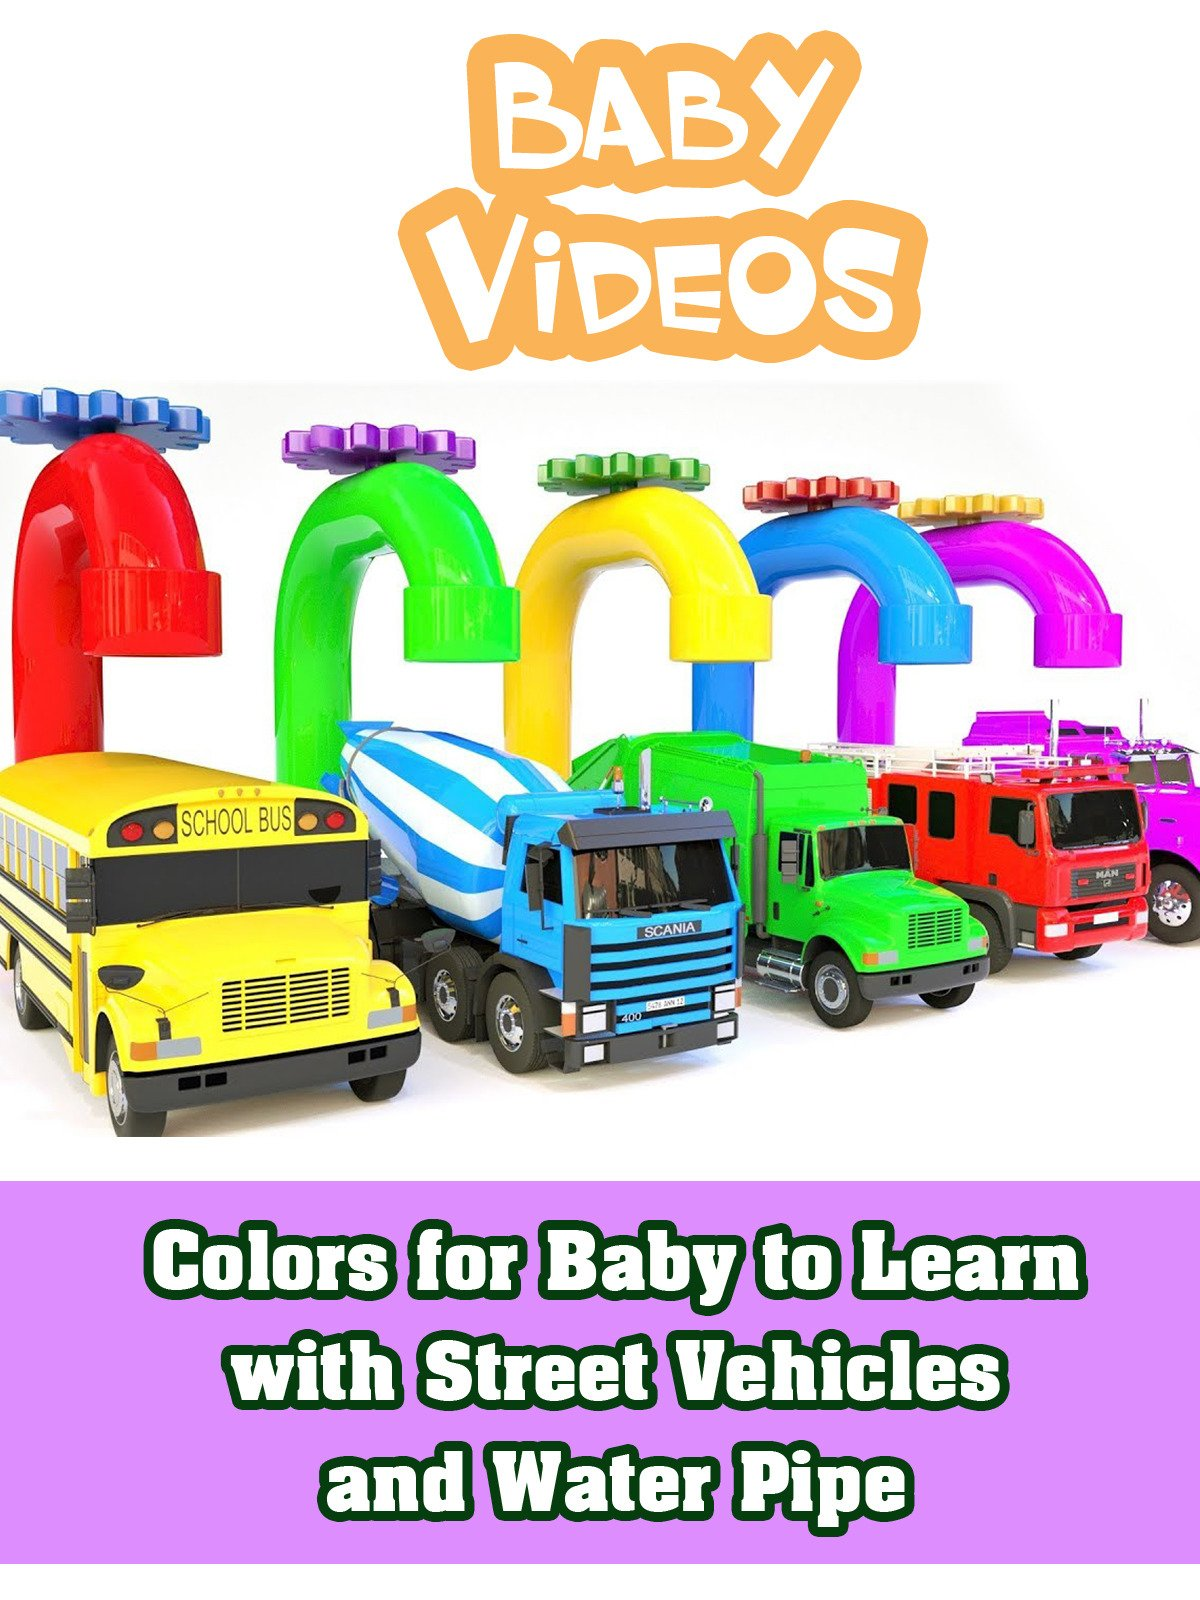 Colors for Baby to Learn with Street Vehicles and Water Pipe